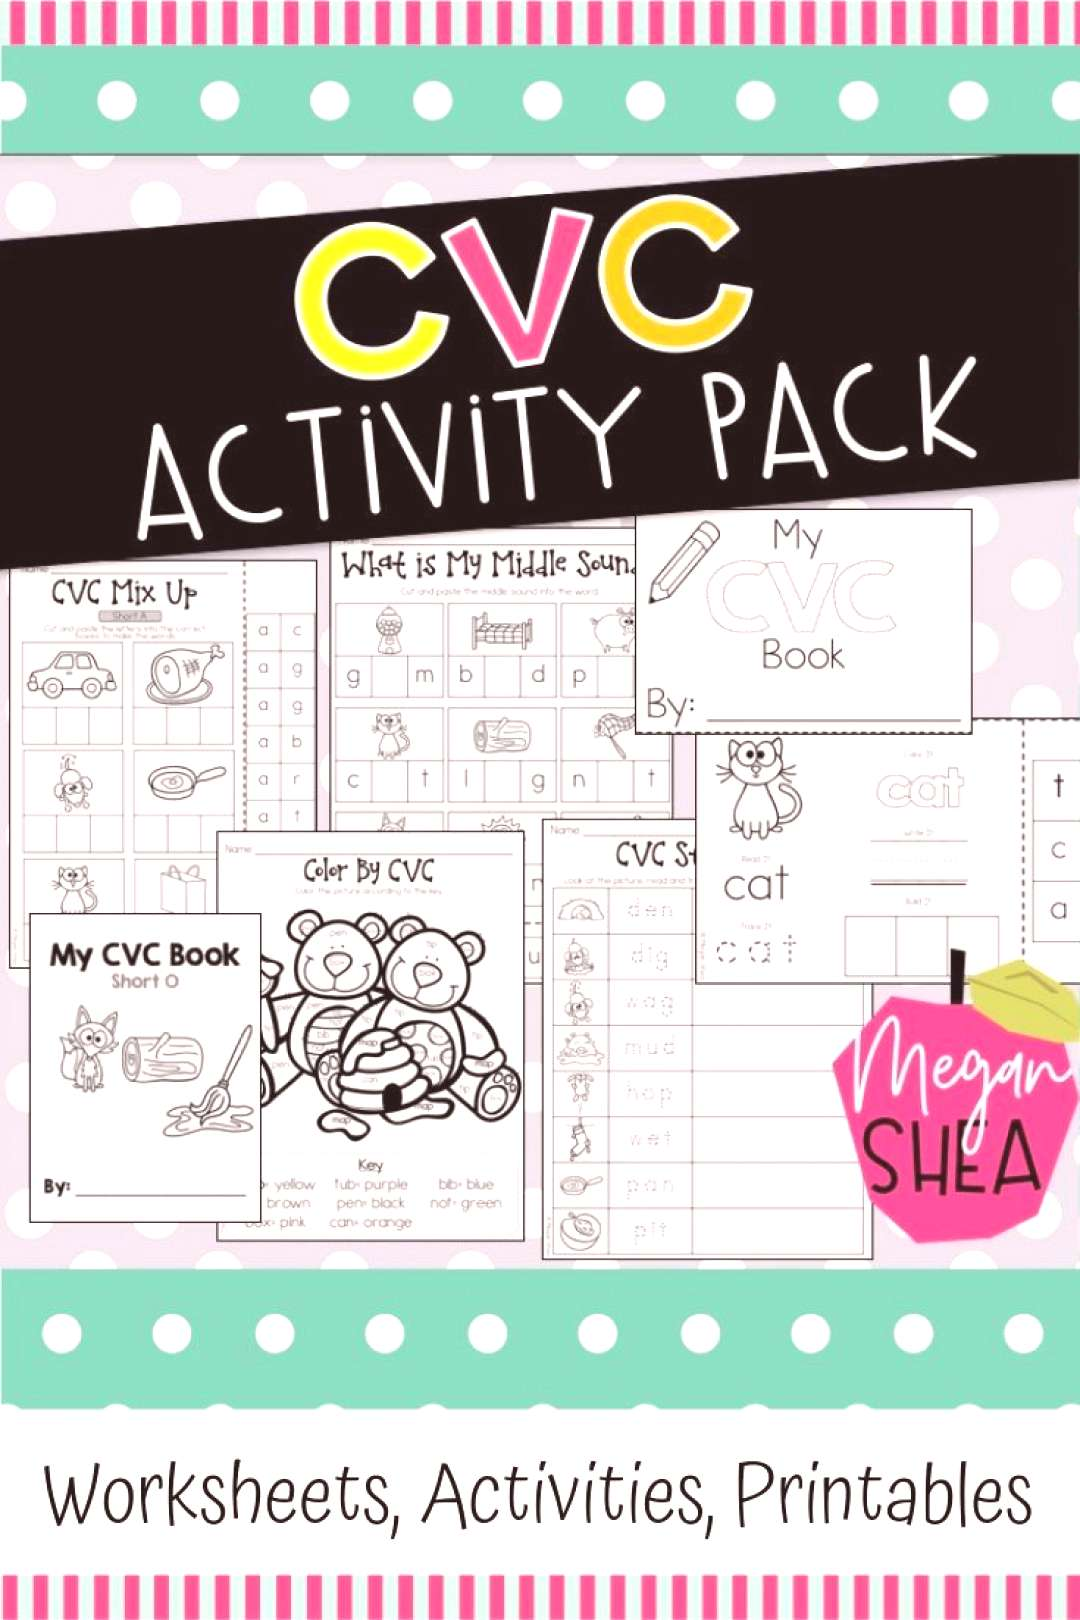 CVC Activity Pack for Kindergarten CVC Activities. This resource includes 27 pages of fun, CVC-them